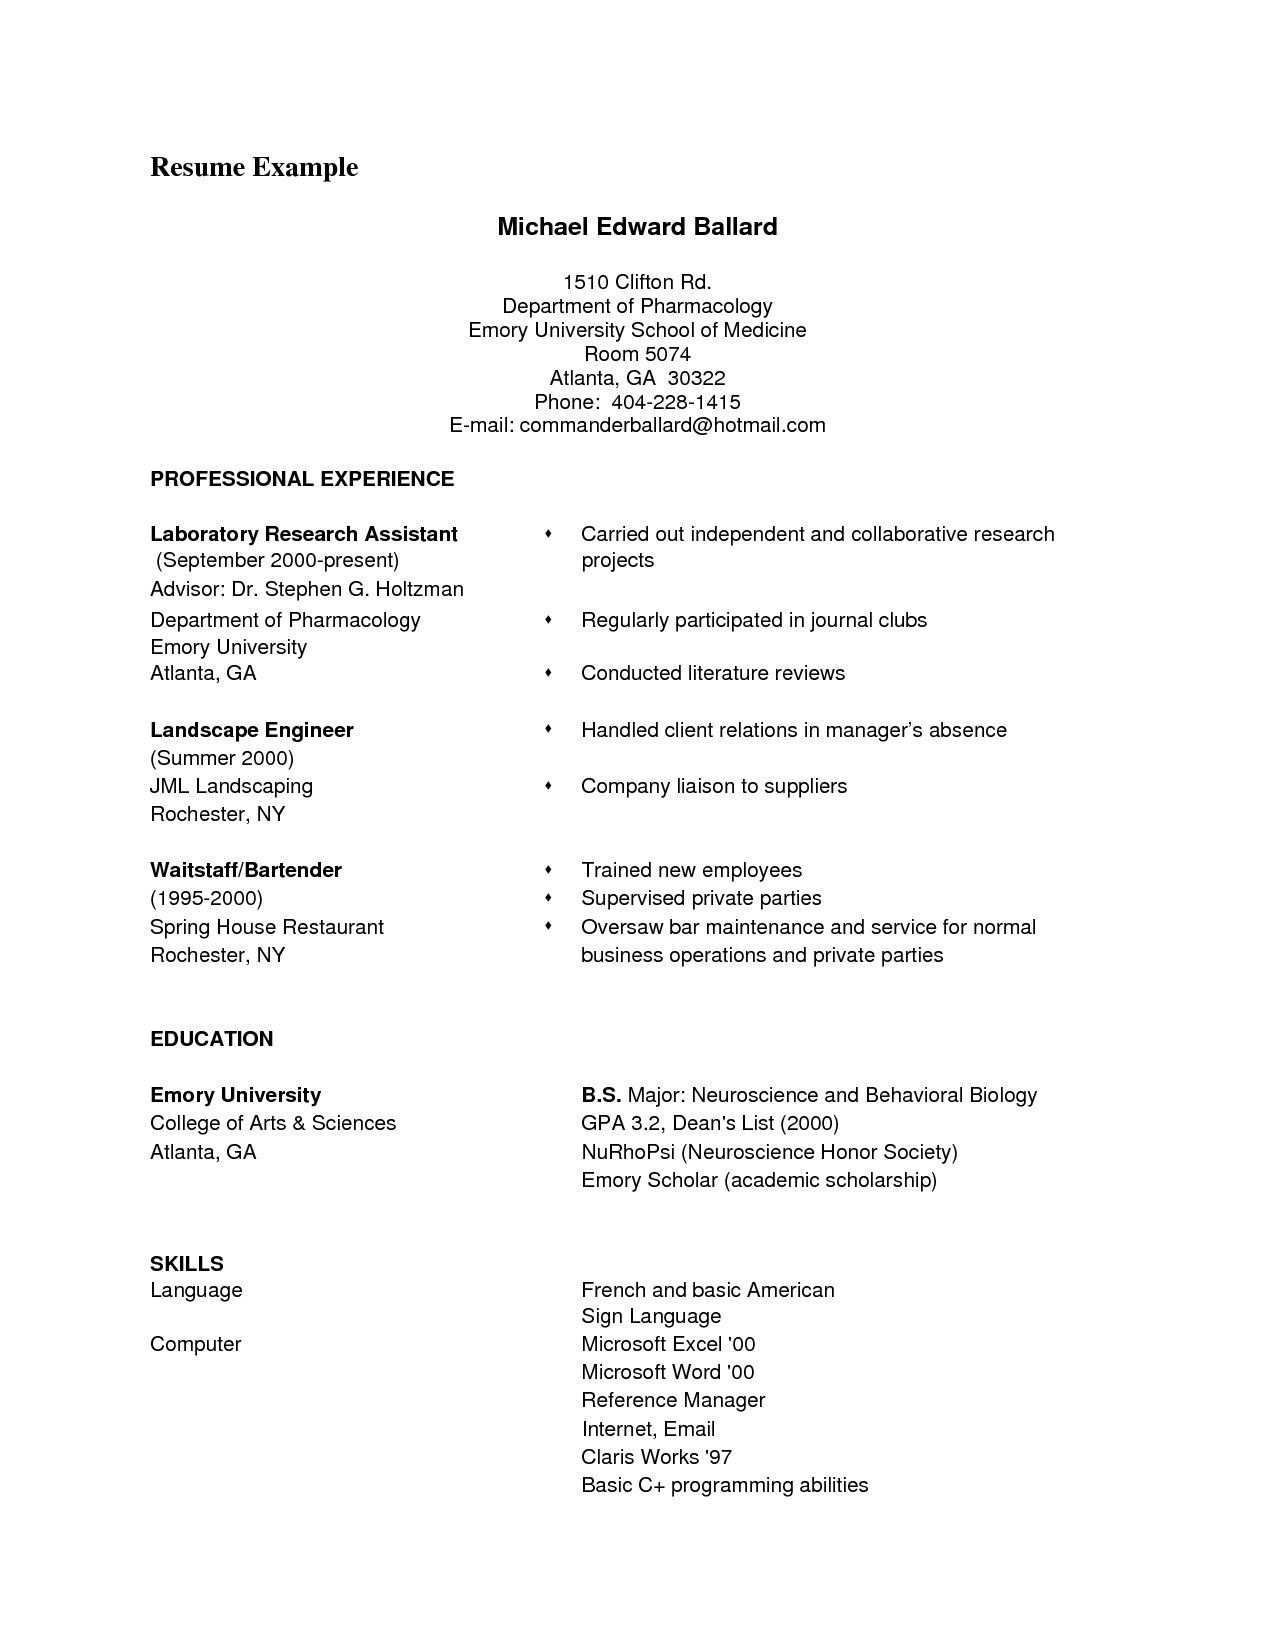 Resume Templates for Medical Field - Classic Resume Templates ¢Ë†Å¡ Powerpoint Templates for Biology New